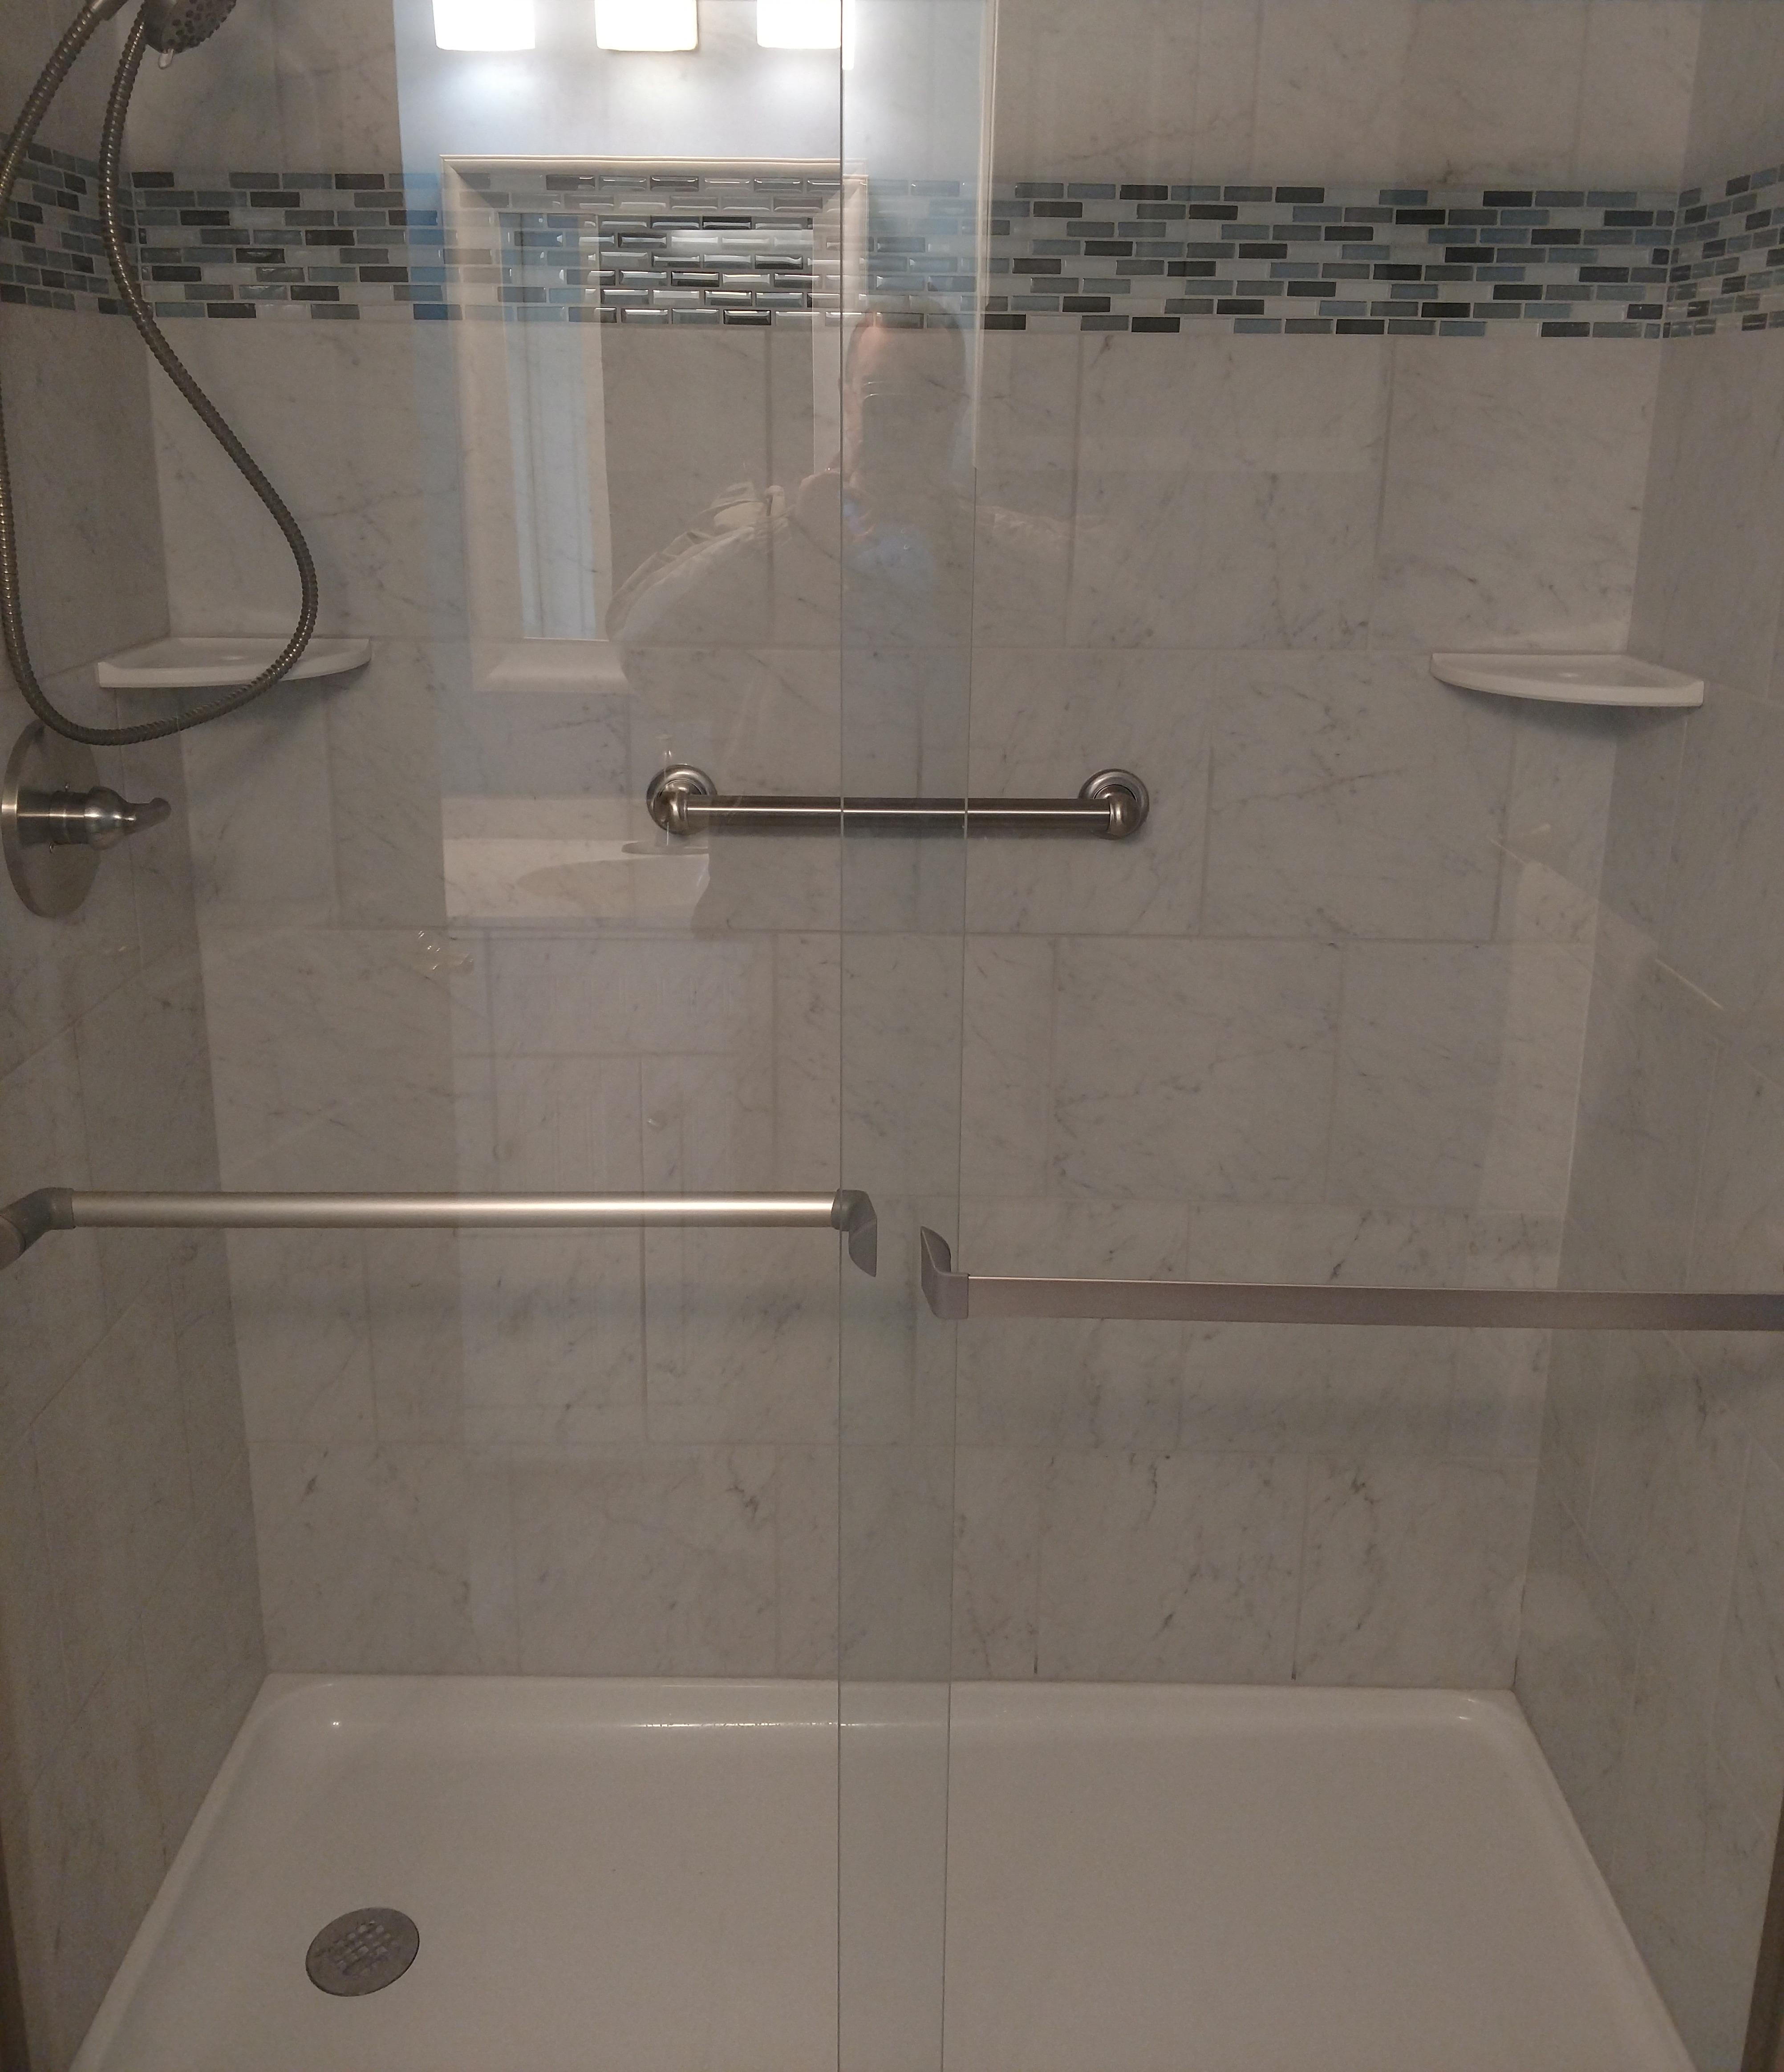 Accurate Upgrades Home Improvements LLC image 7